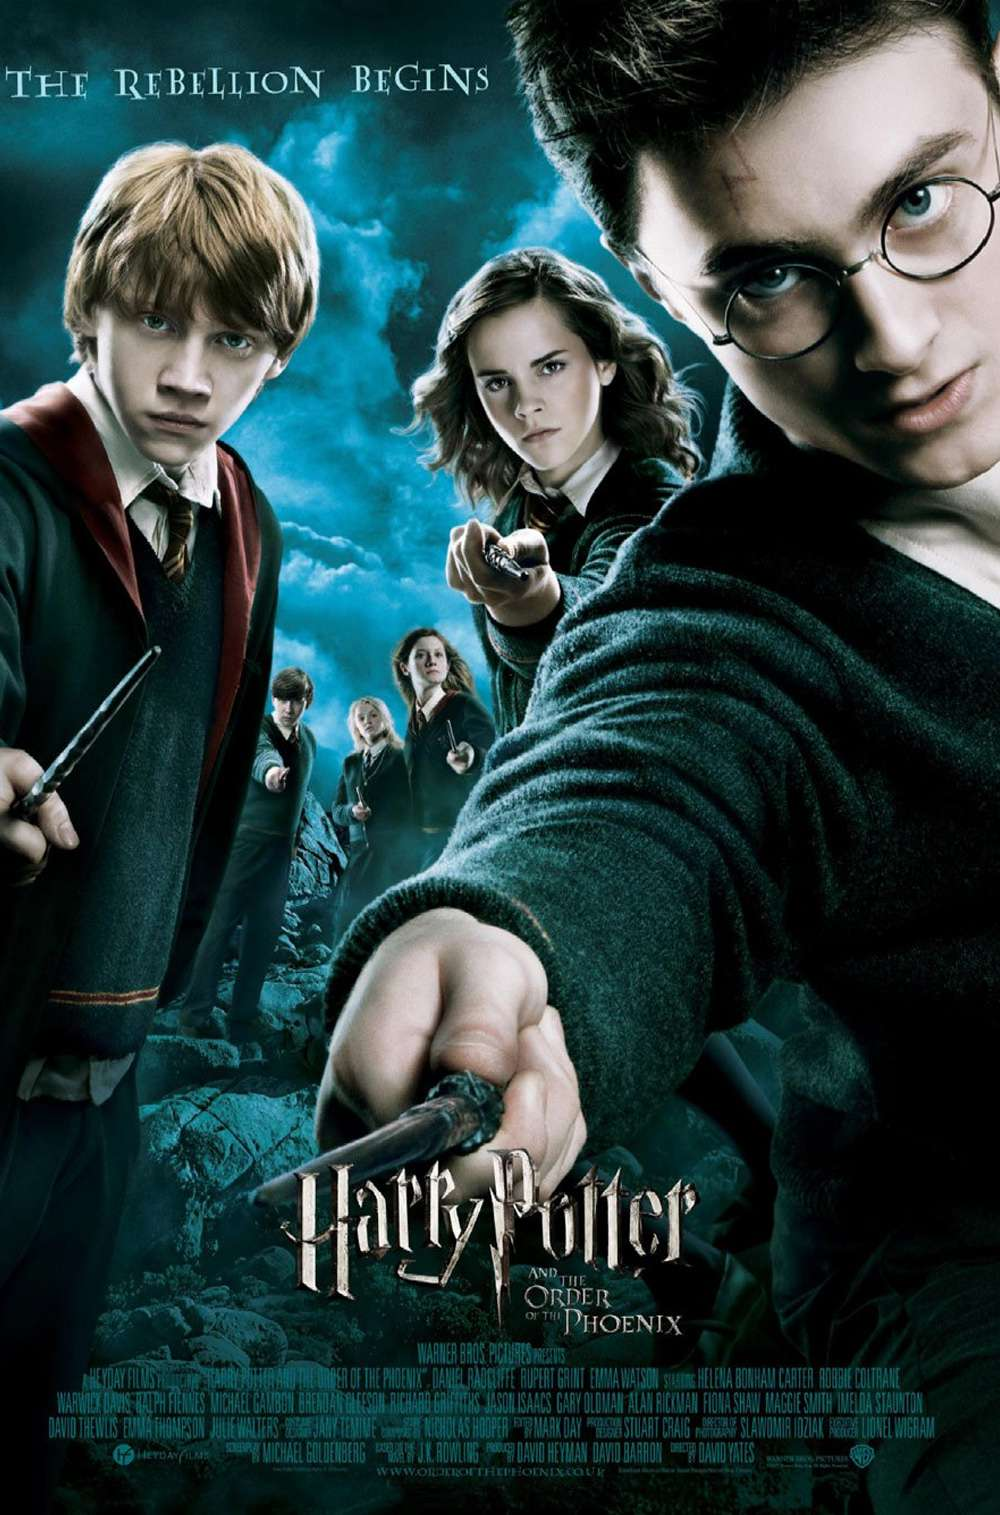 Poster for Harry Potter and the Order of the Phoenix (2007)